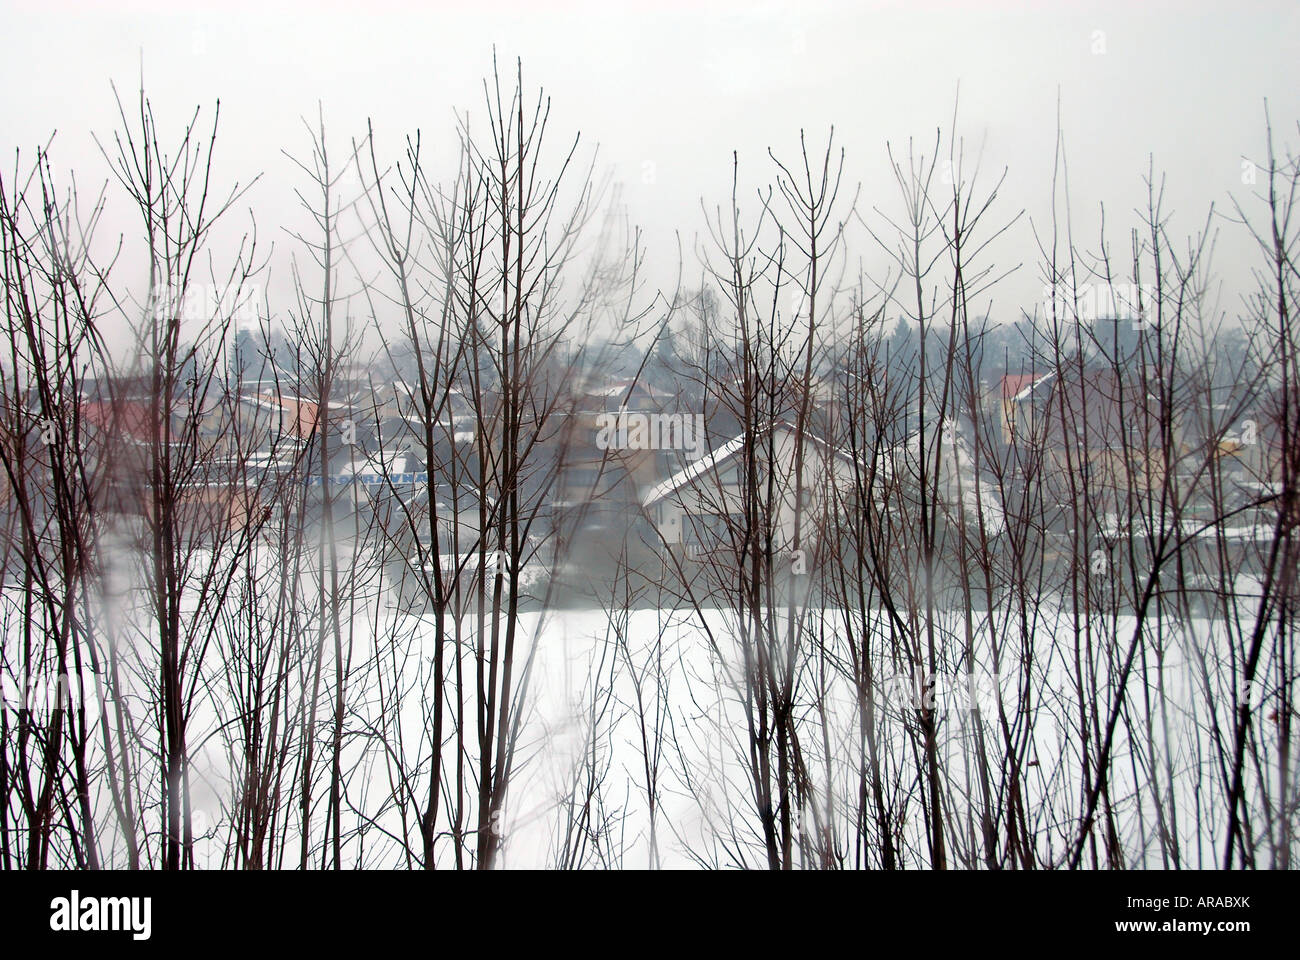 Winter scenery in arural area near Vrchlabi Czech - Stock Image